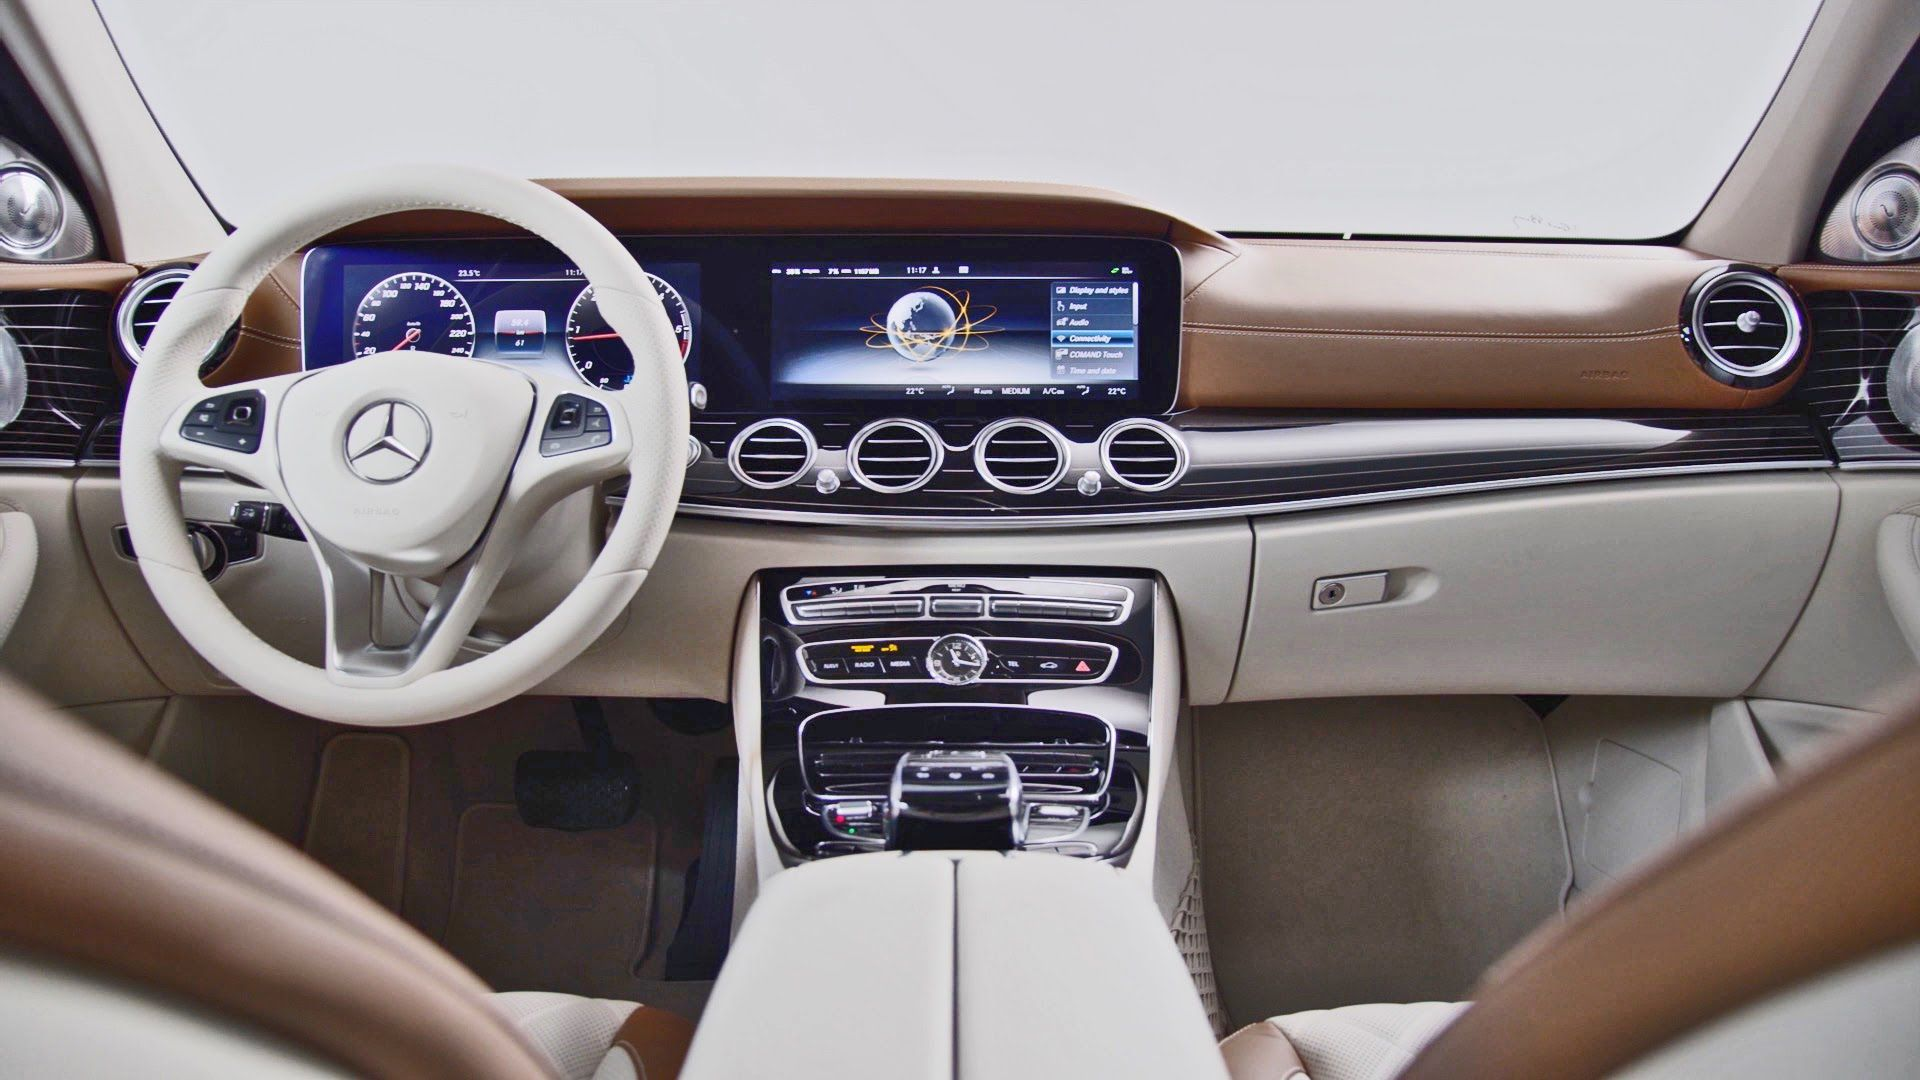 New 2017 Mercedes E Class Interiors Mercedes Benz E350